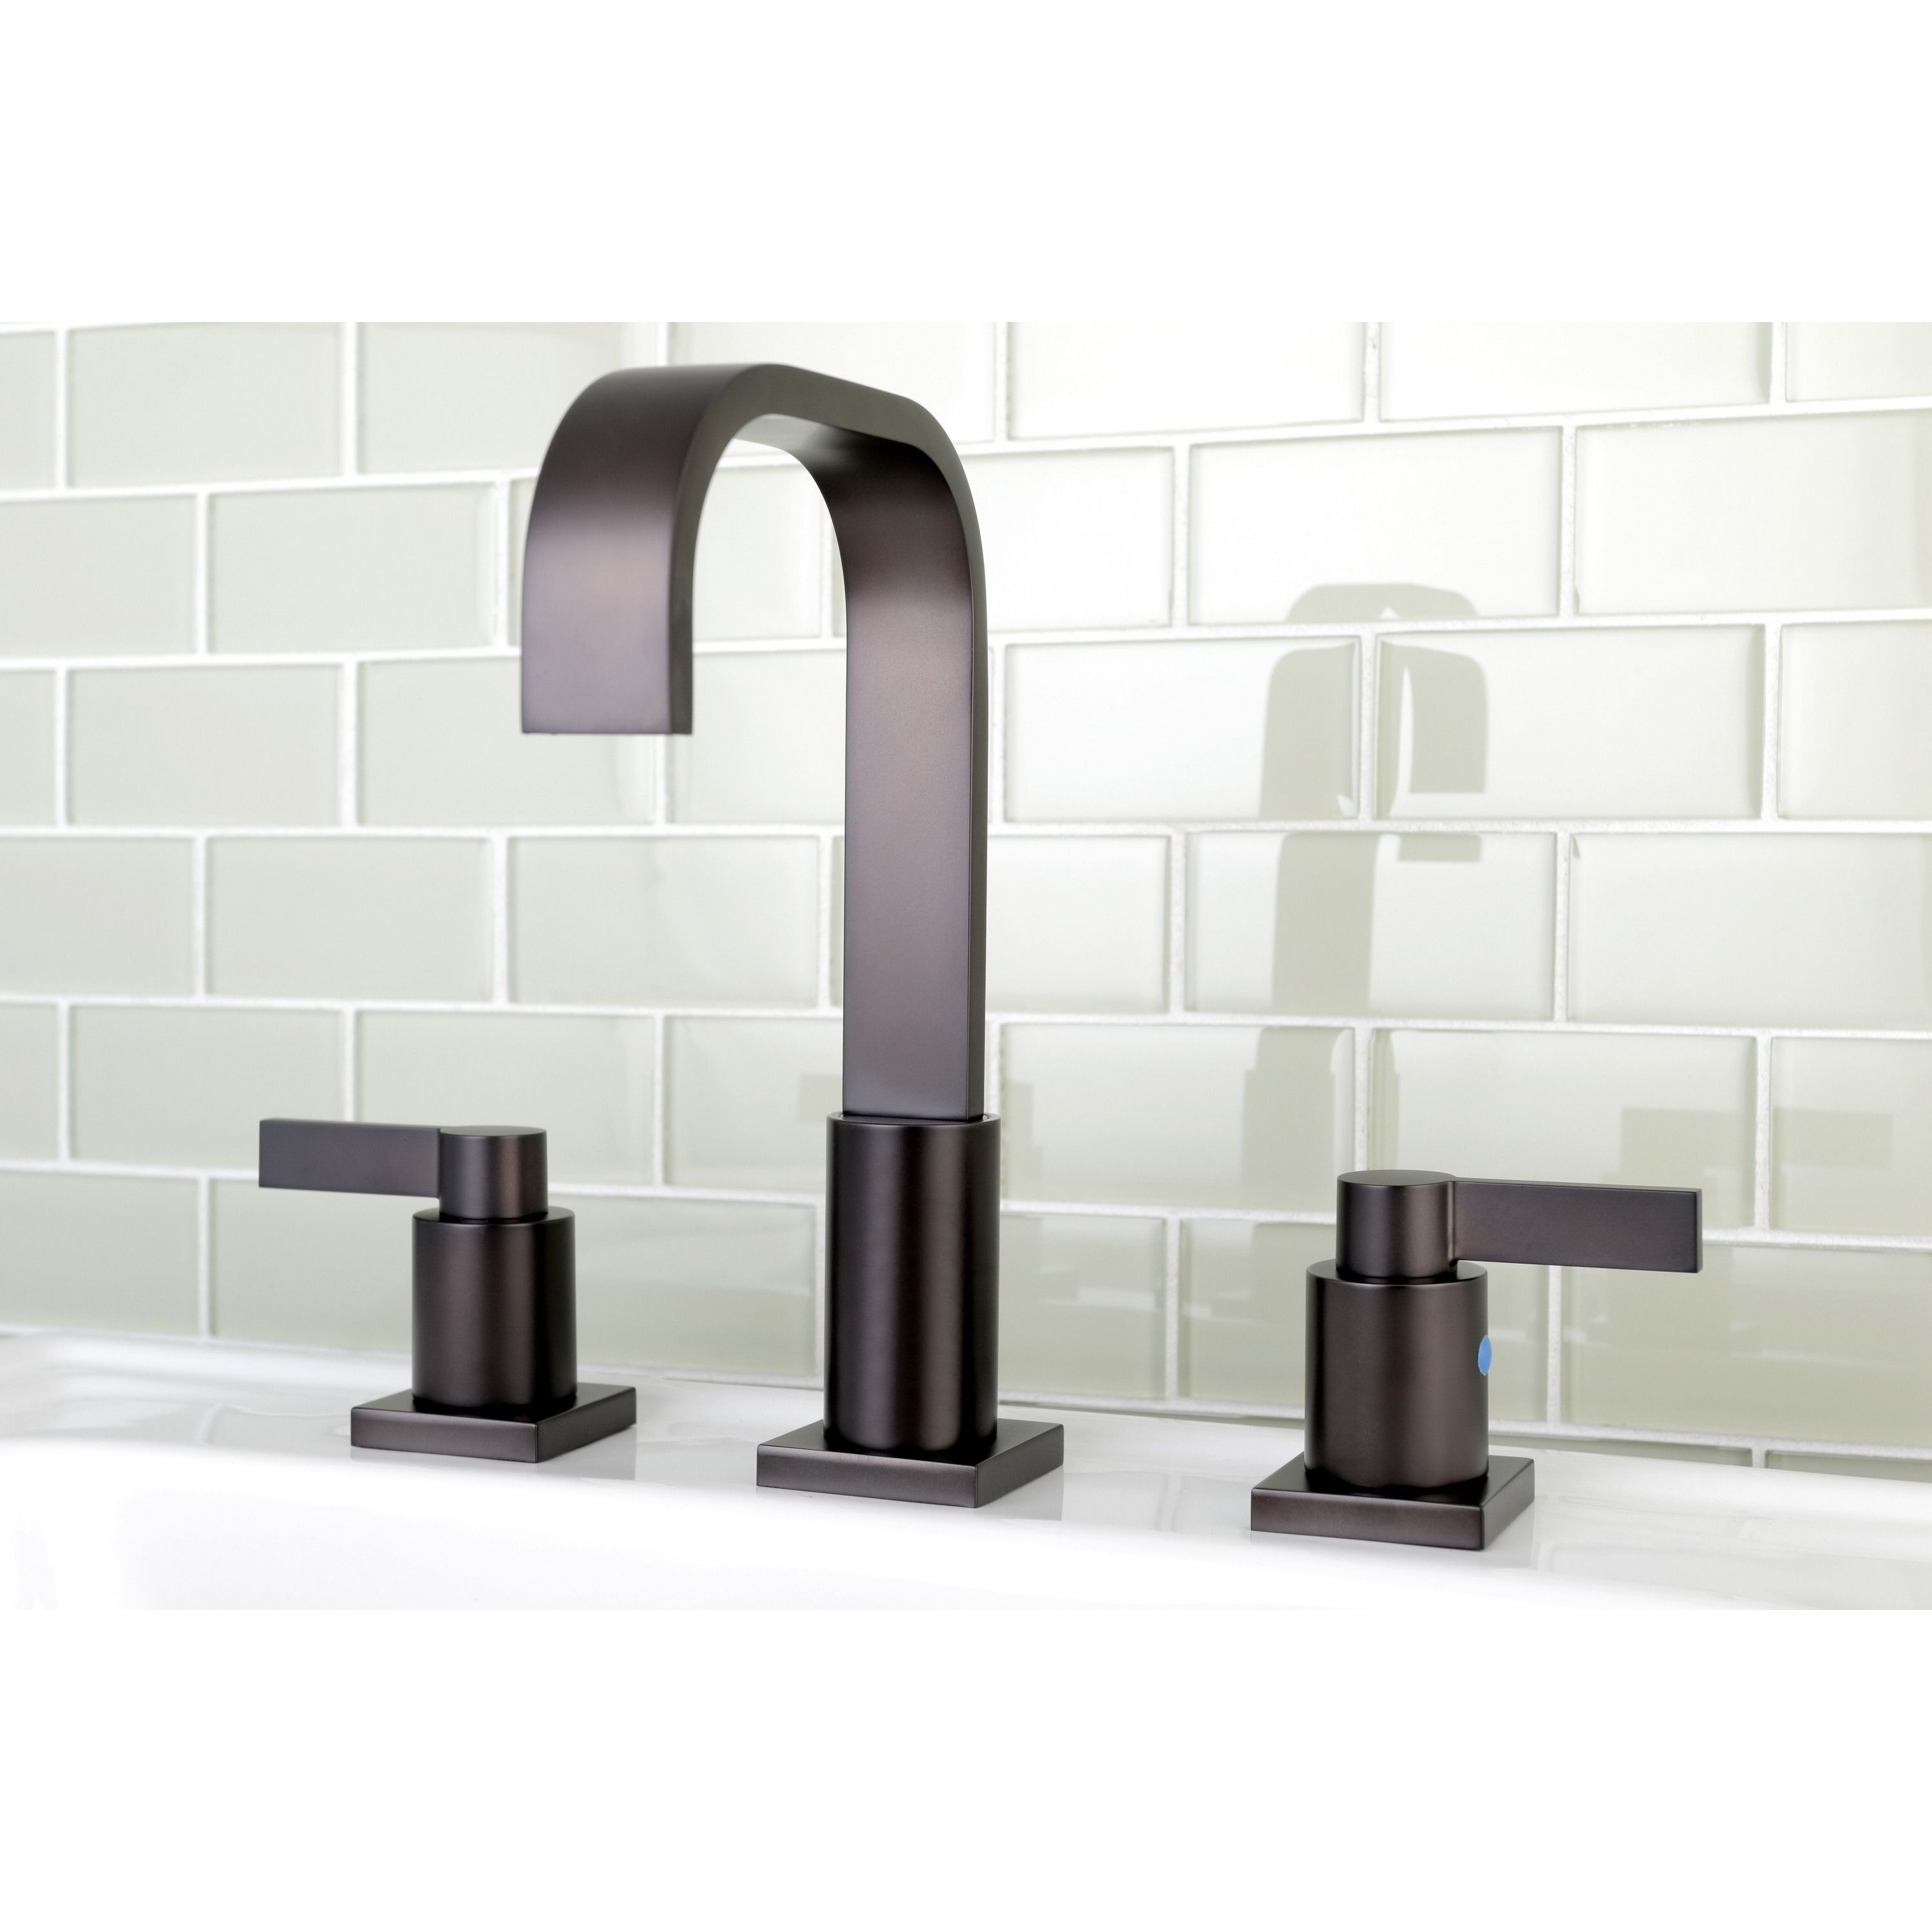 Kingston brass high arch oil rubbed bronze widespread bathroom faucet oil rubbed bronze